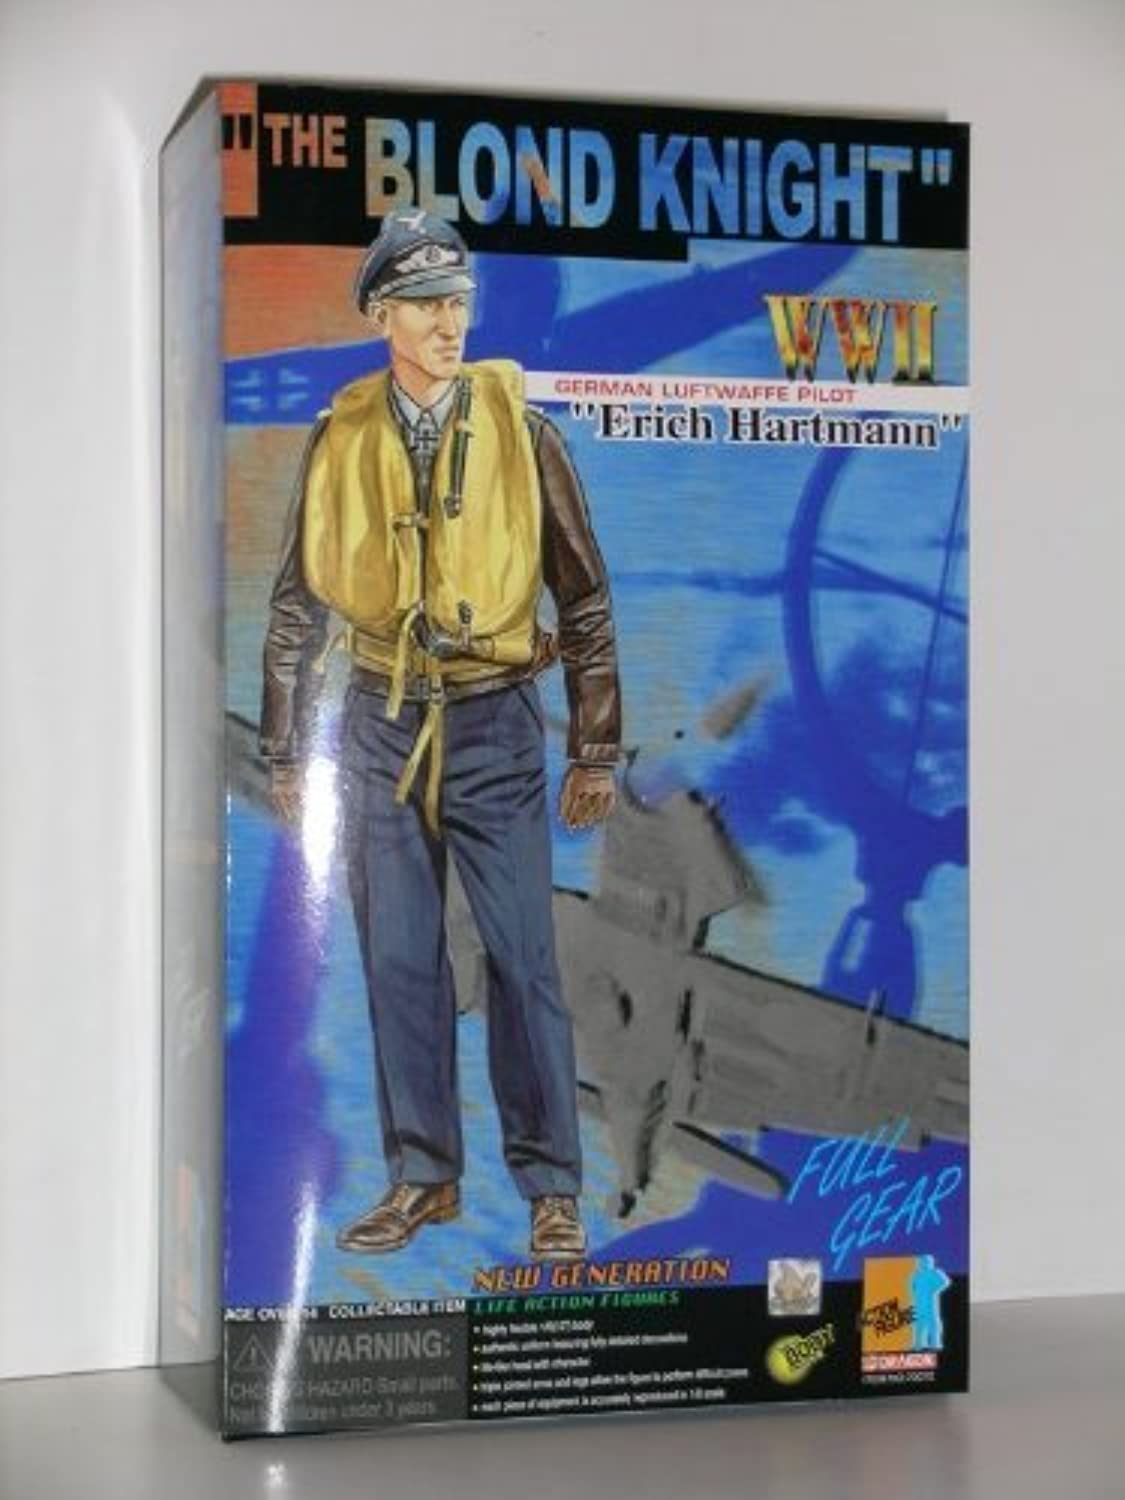 solo cómpralo The Blond Knight--Erich Hartmann WWII Fighter Ace by by by Dragon Acción Figura  comprar nuevo barato